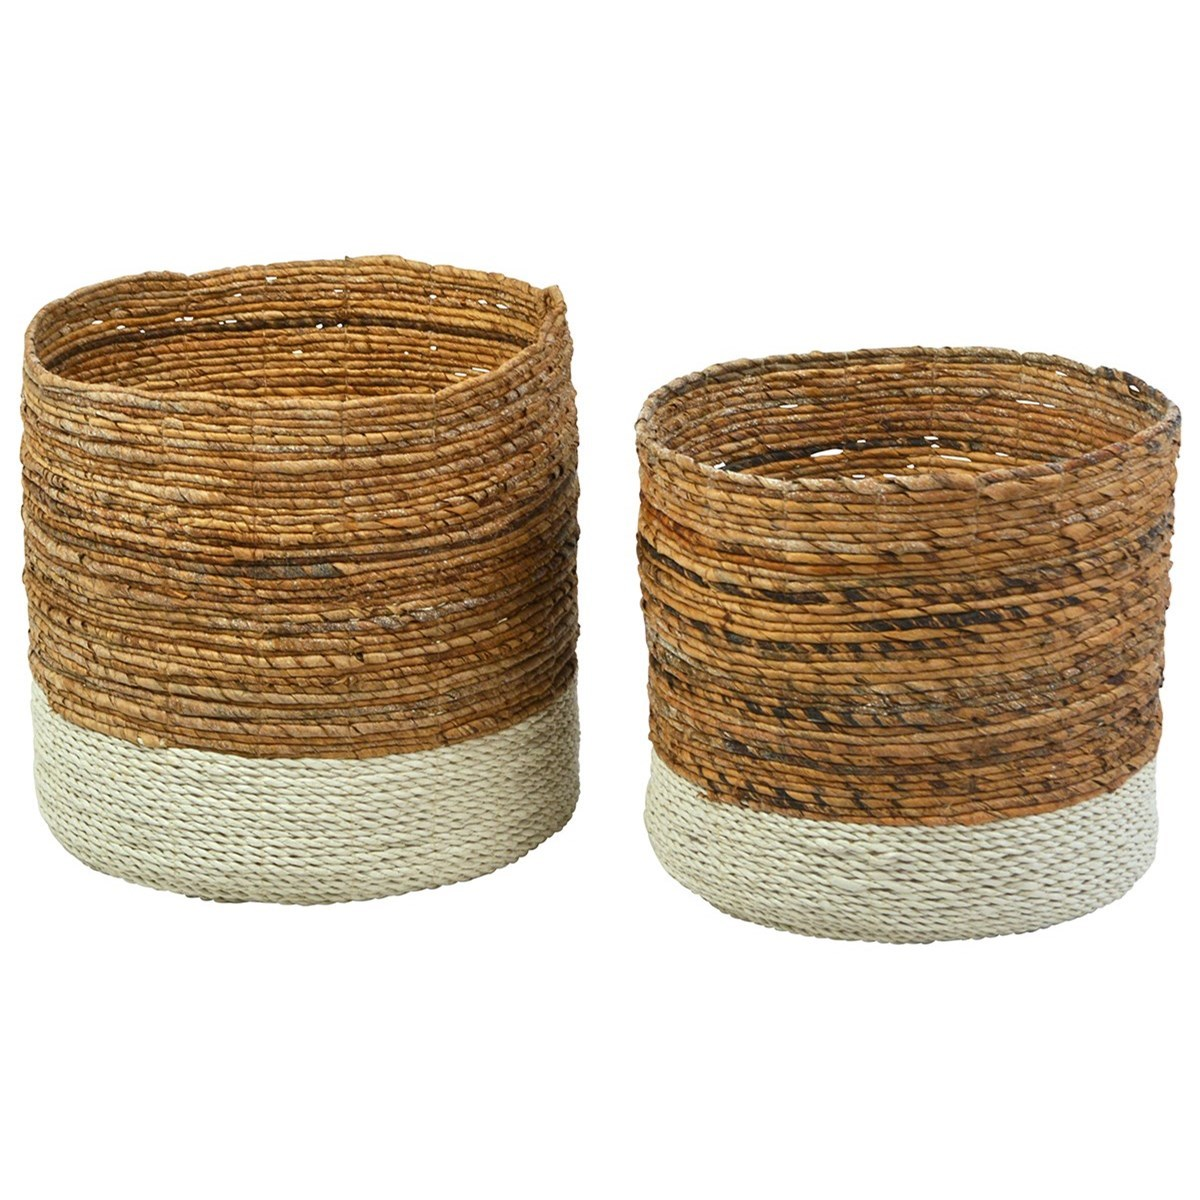 Basket Set of 2